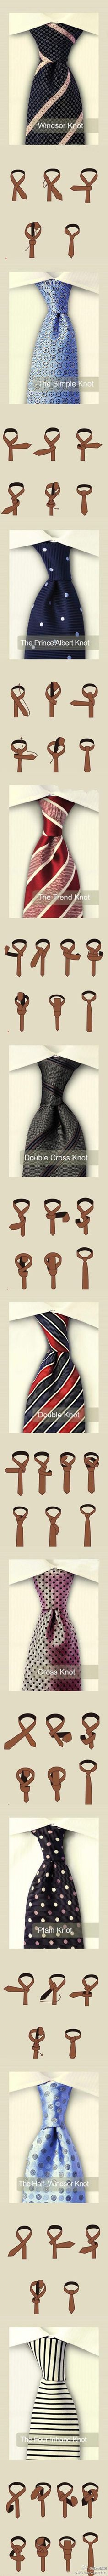 Different ways to do a tie